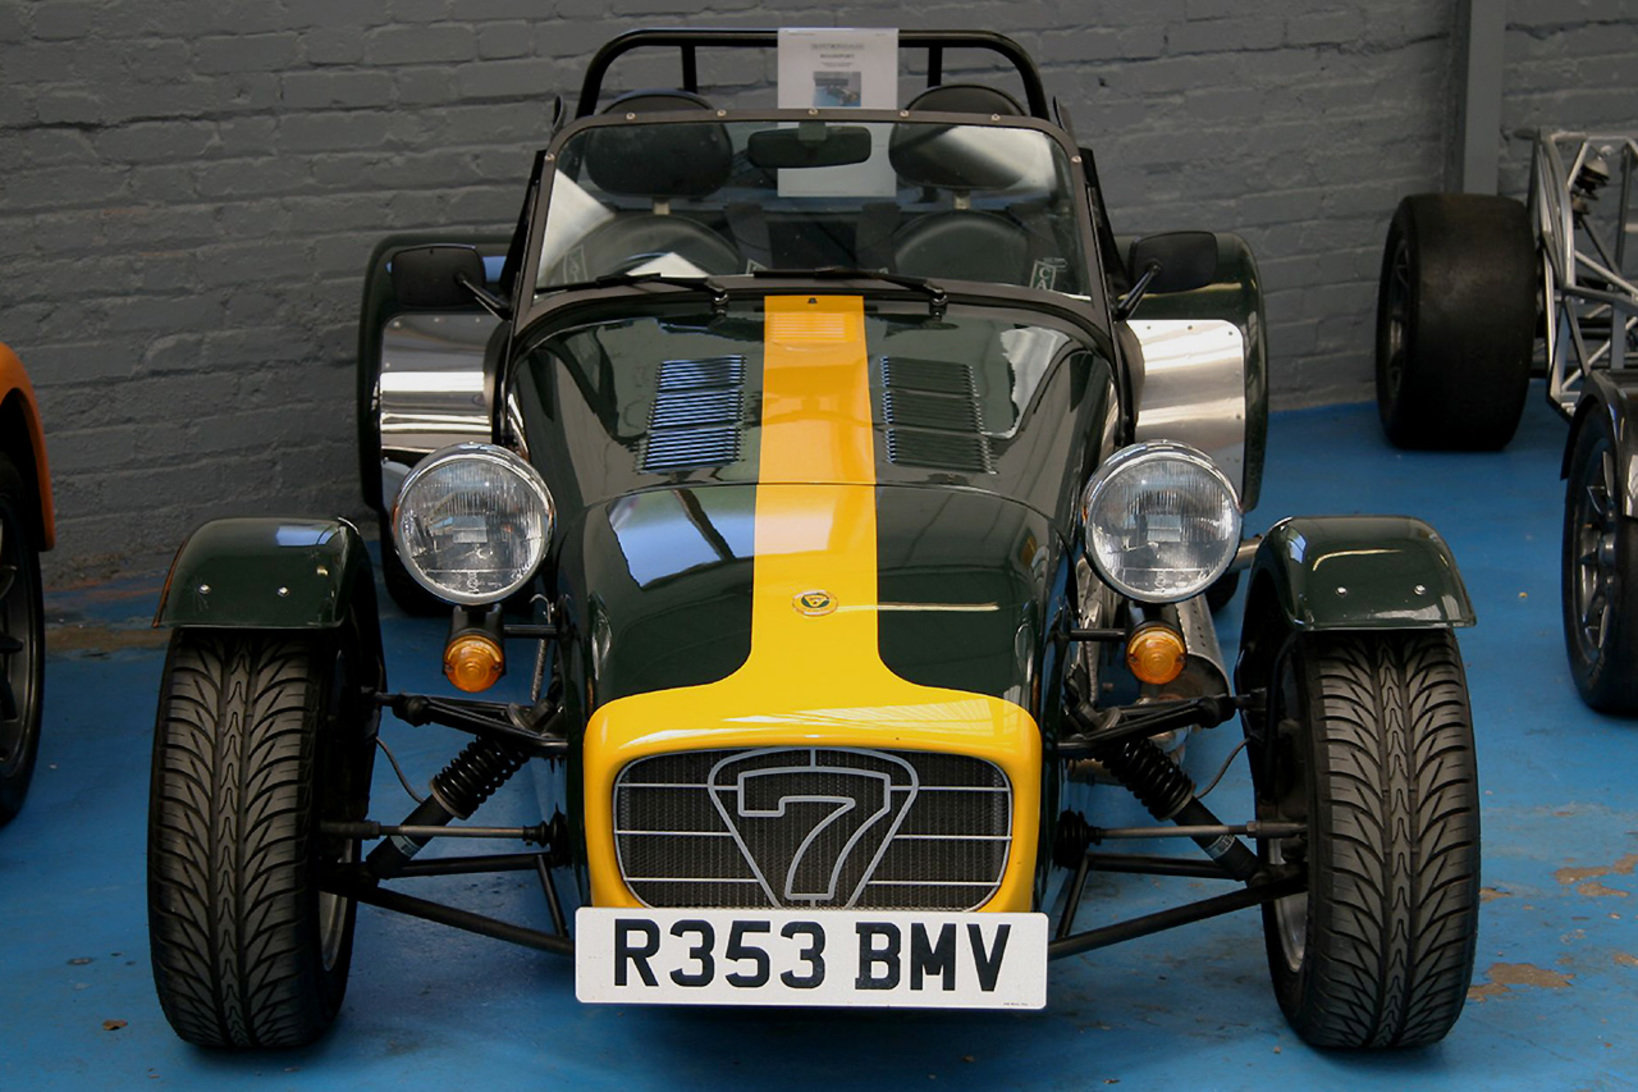 Caterham 7 at Caterhams showroom by Brian Snelson from Hockley, Essex, England